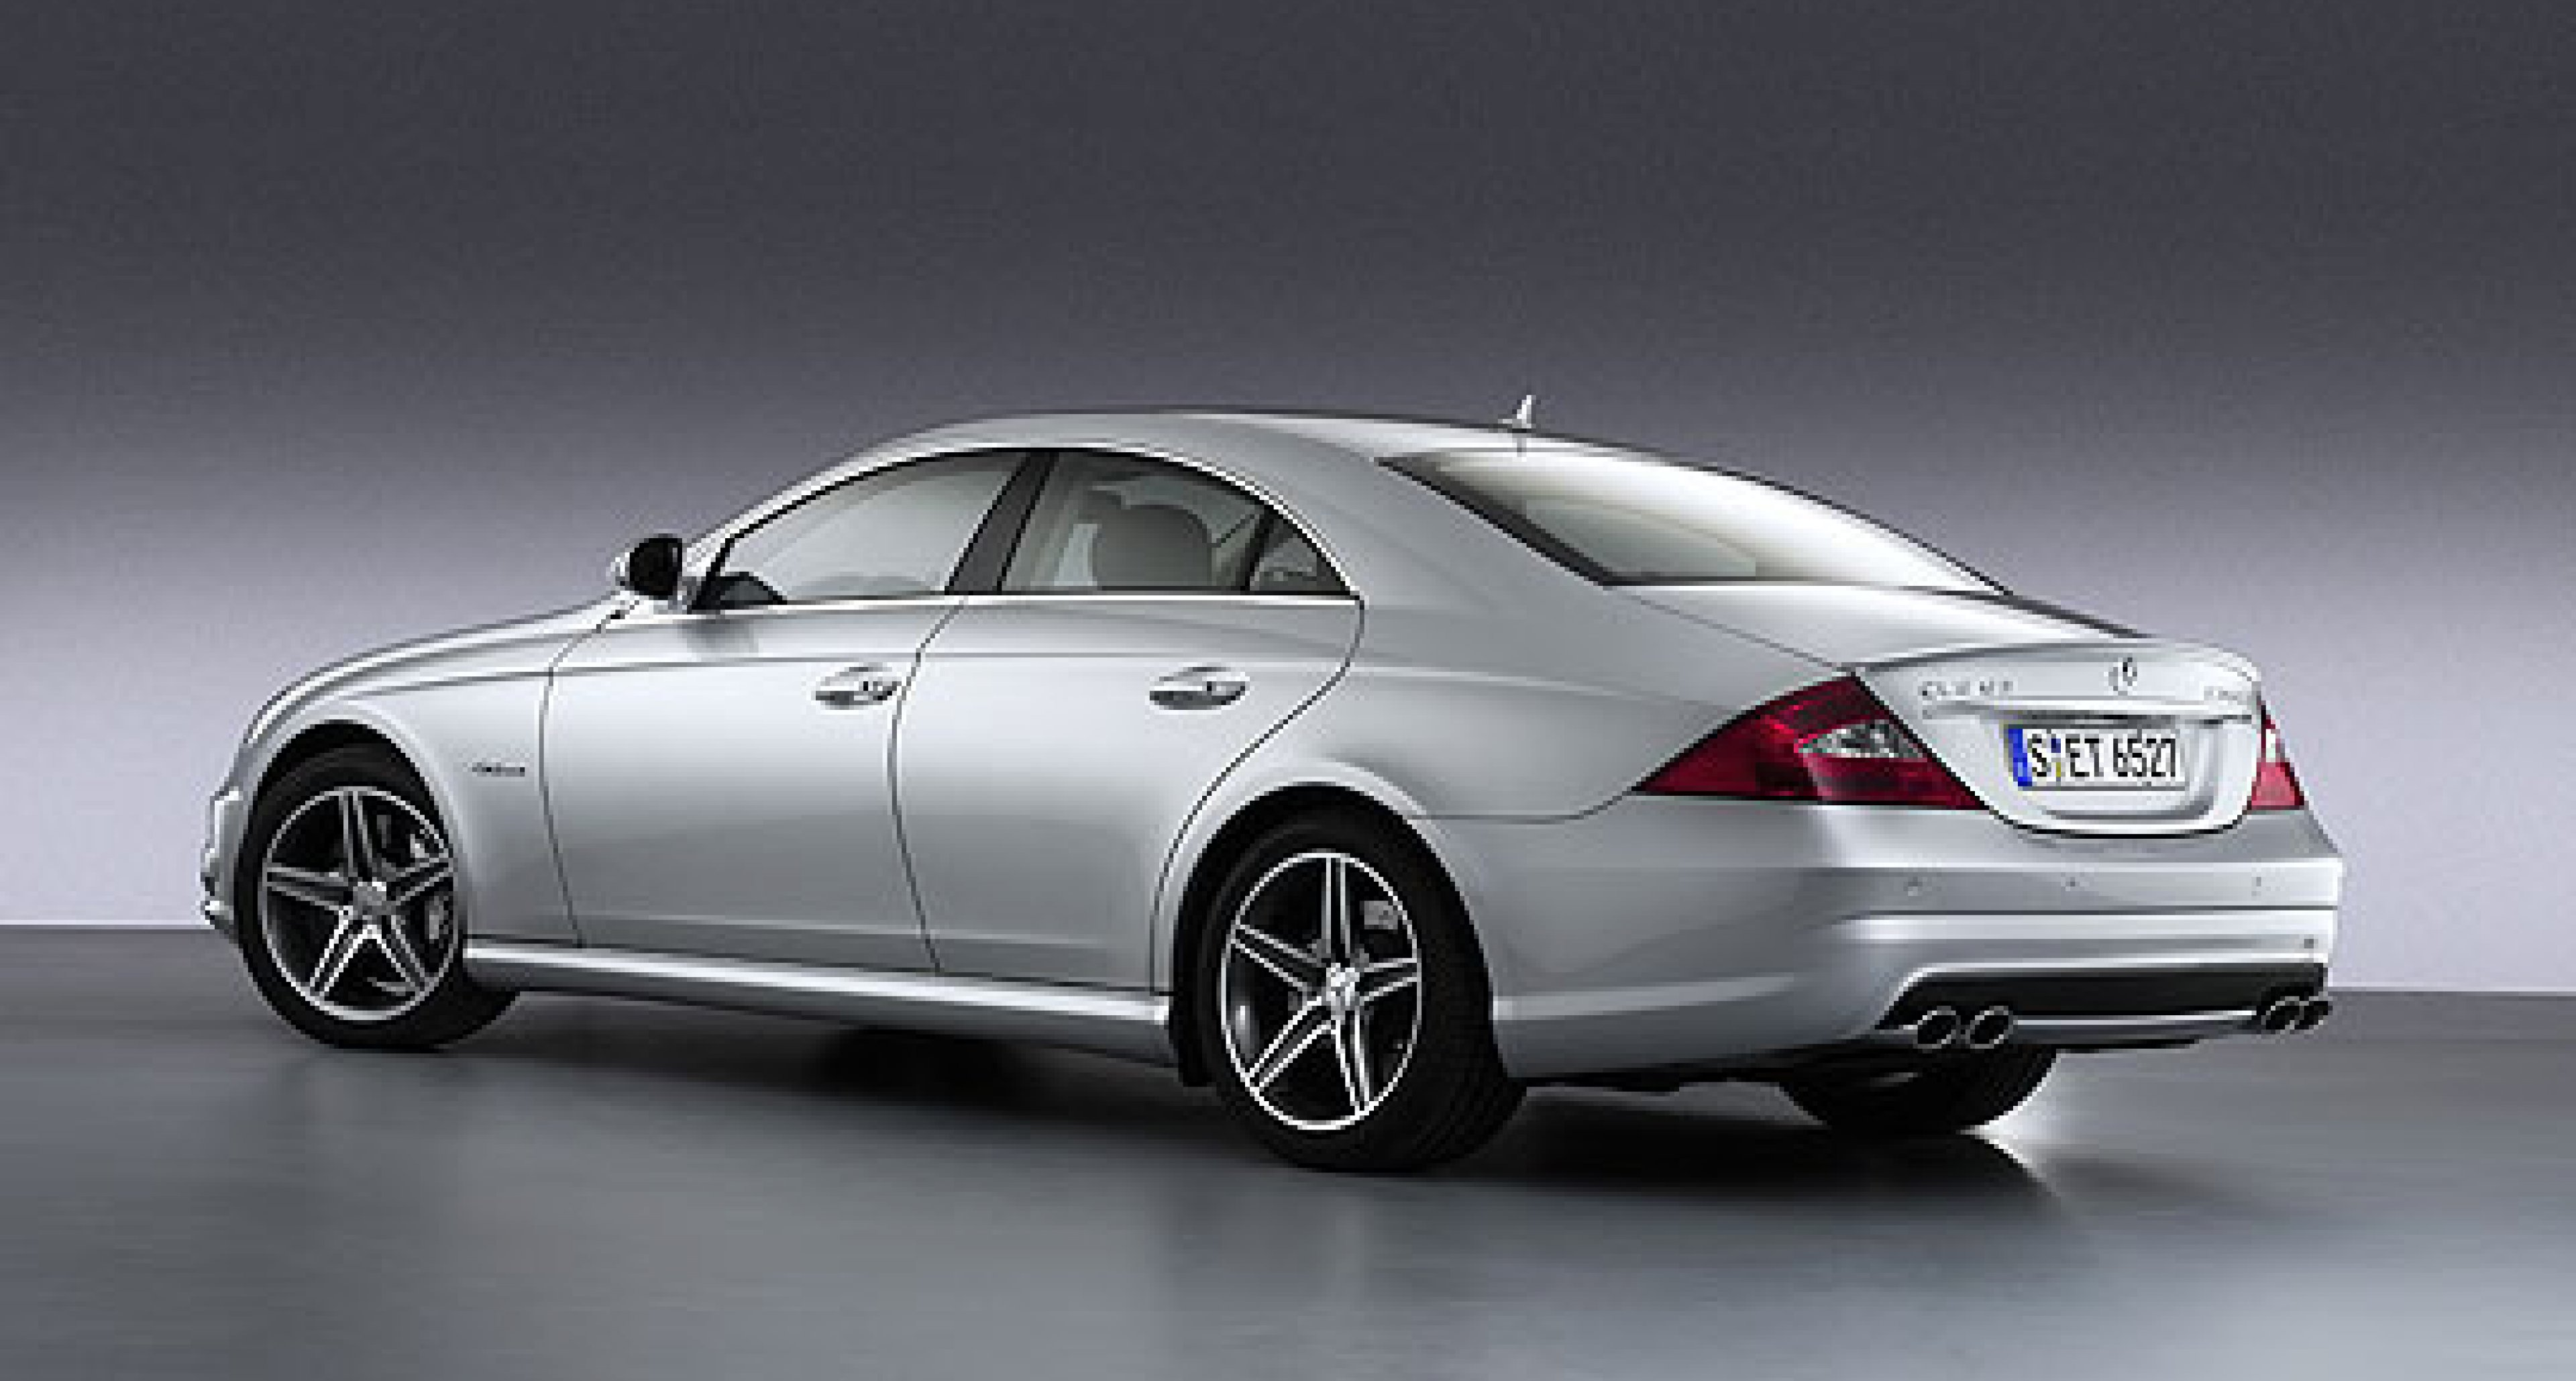 Mercedes CLS 63 AMG and CLK 63 AMG